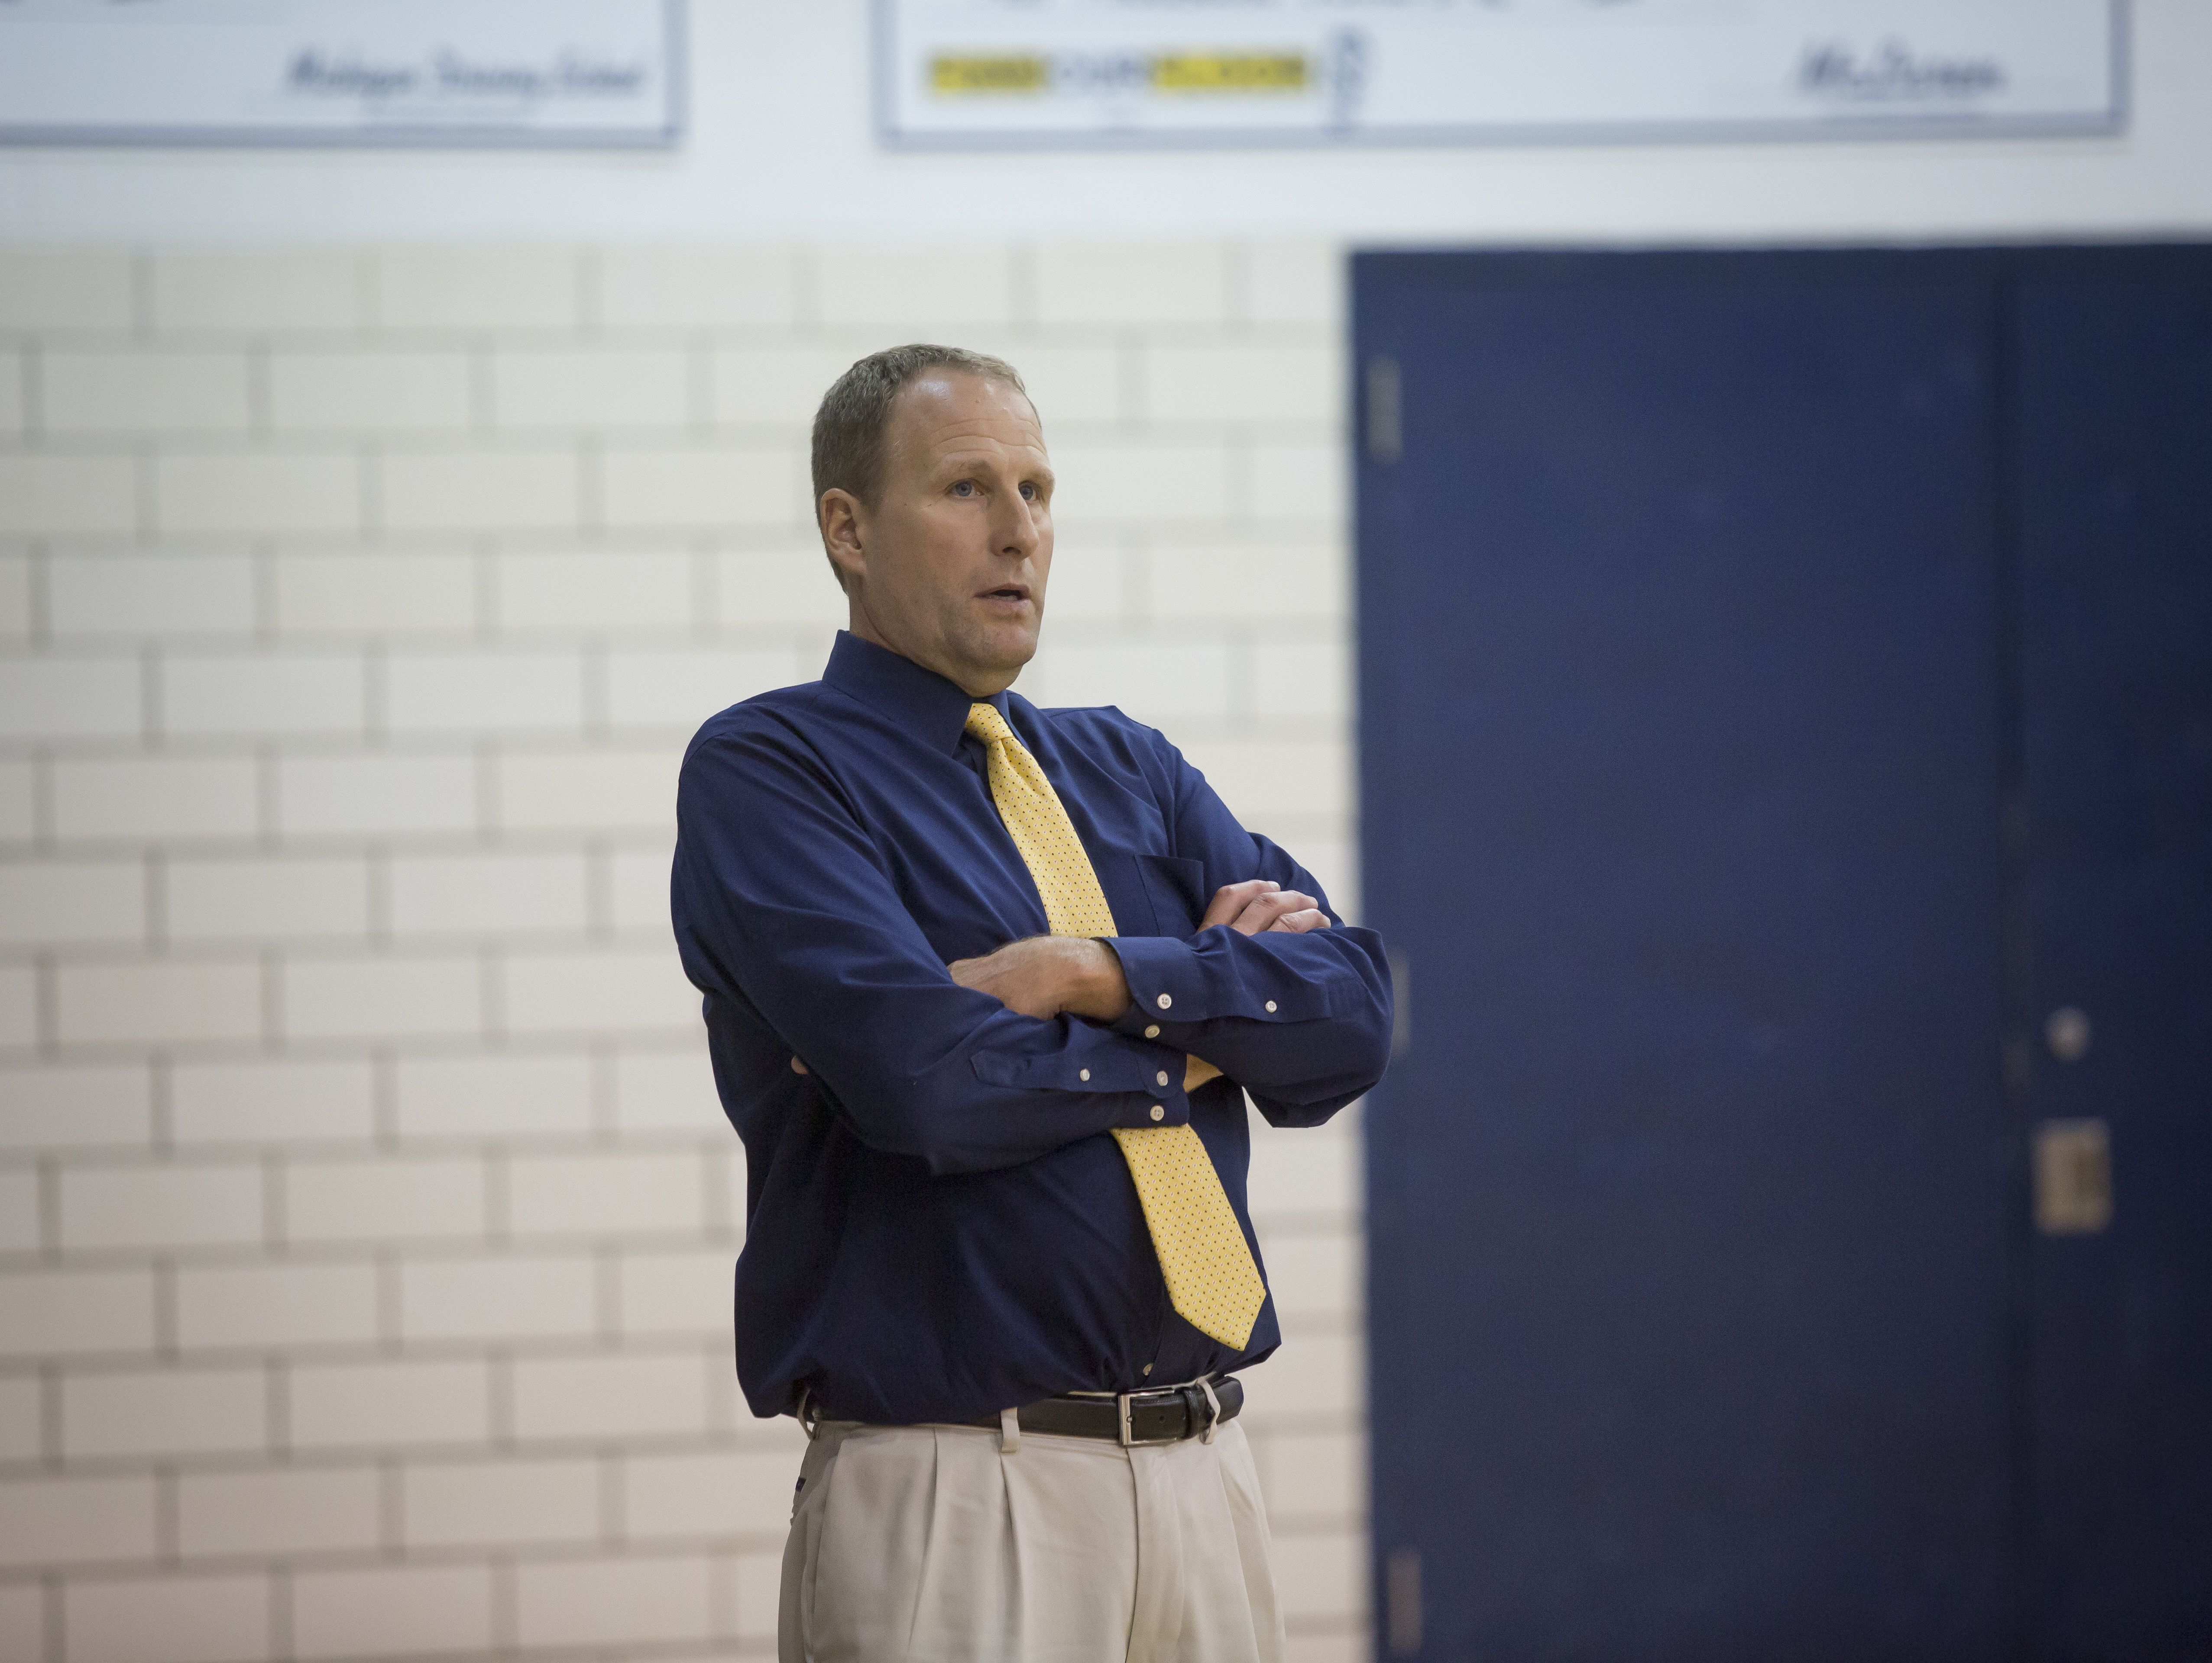 Port Huron Northern coach Tim Langolf watches the action during their 0-3 loss to L'Anse Creuse North Tuesday, September 27, 2016 at Port Huron Northern High School.